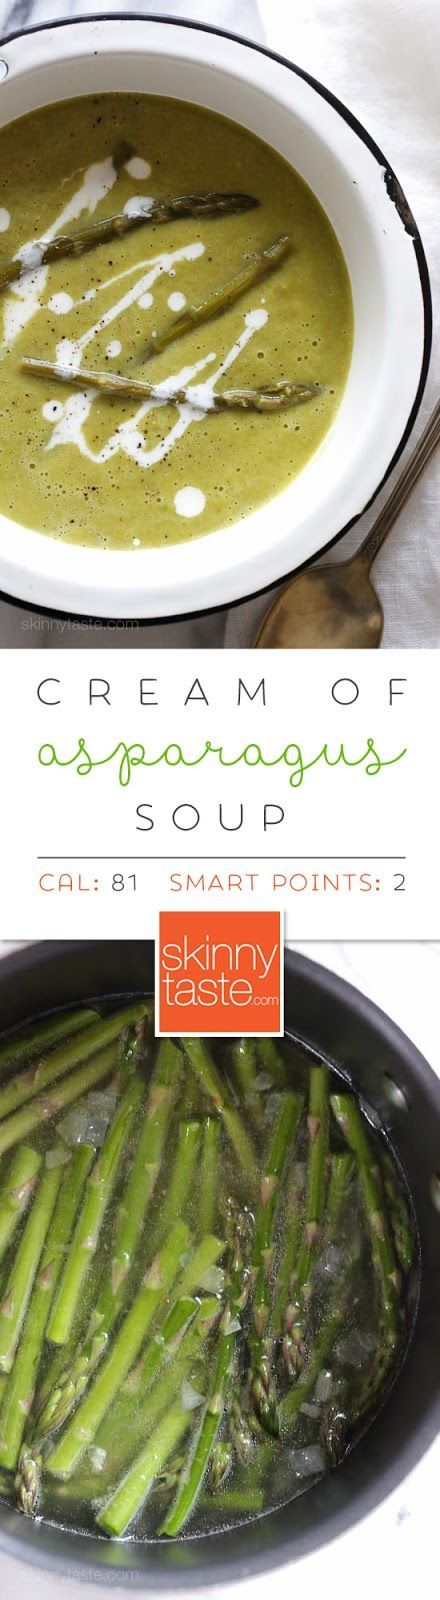 Cream of Asparagus Soup – 5 ingredients, less than 20 minutes to make!